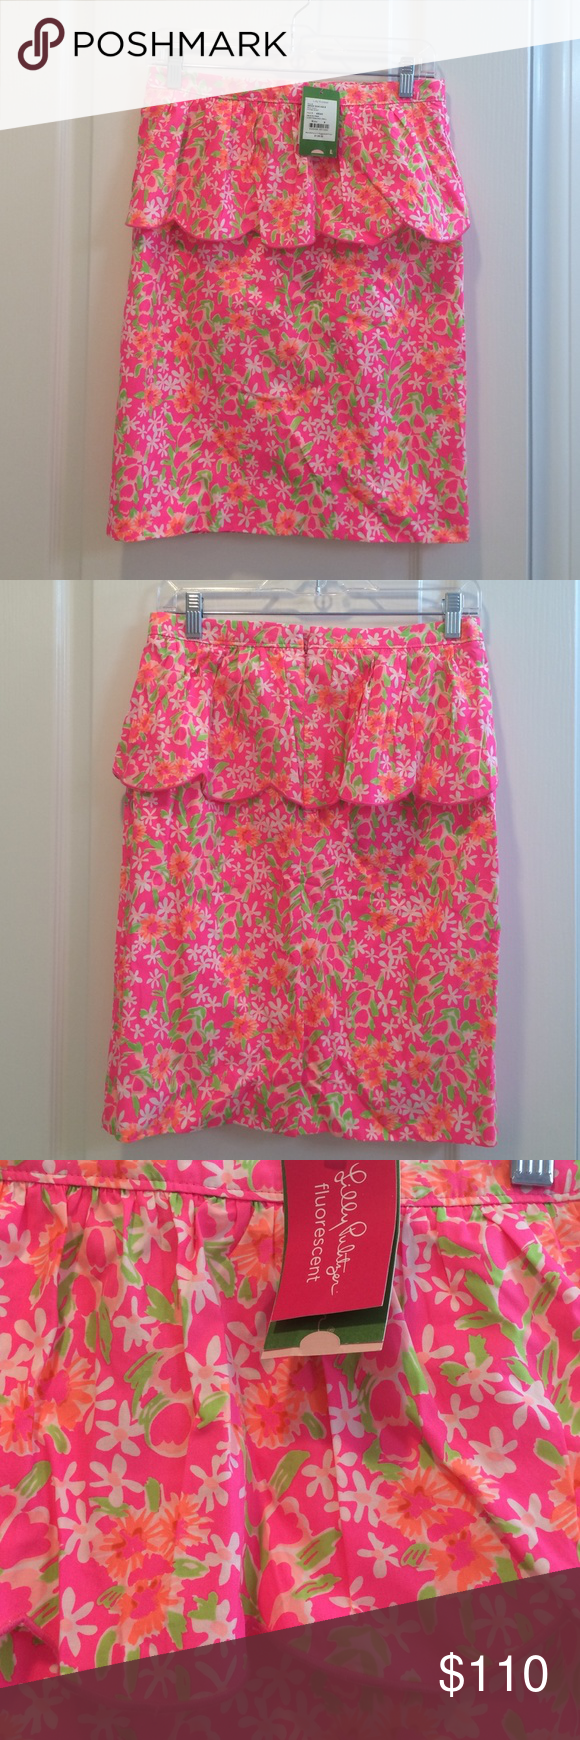 🎉 Host Pick 🎉 NWT Lilly Pulitzer Skirt. NWT